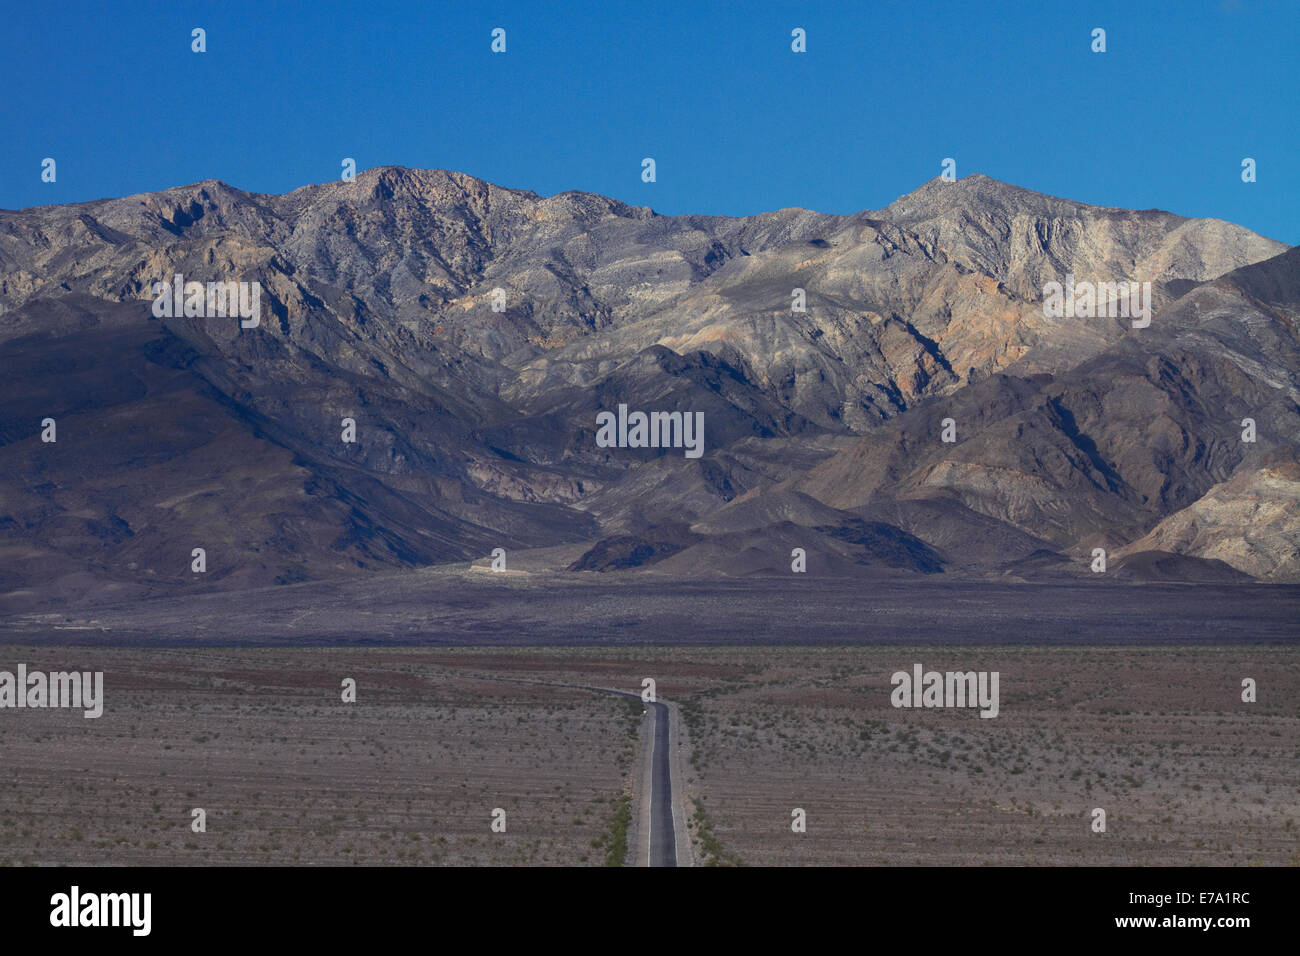 State Route 190 through Death Valley near Stovepipe Wells, towards Panamint Range, Death Valley National Park, Mojave - Stock Image